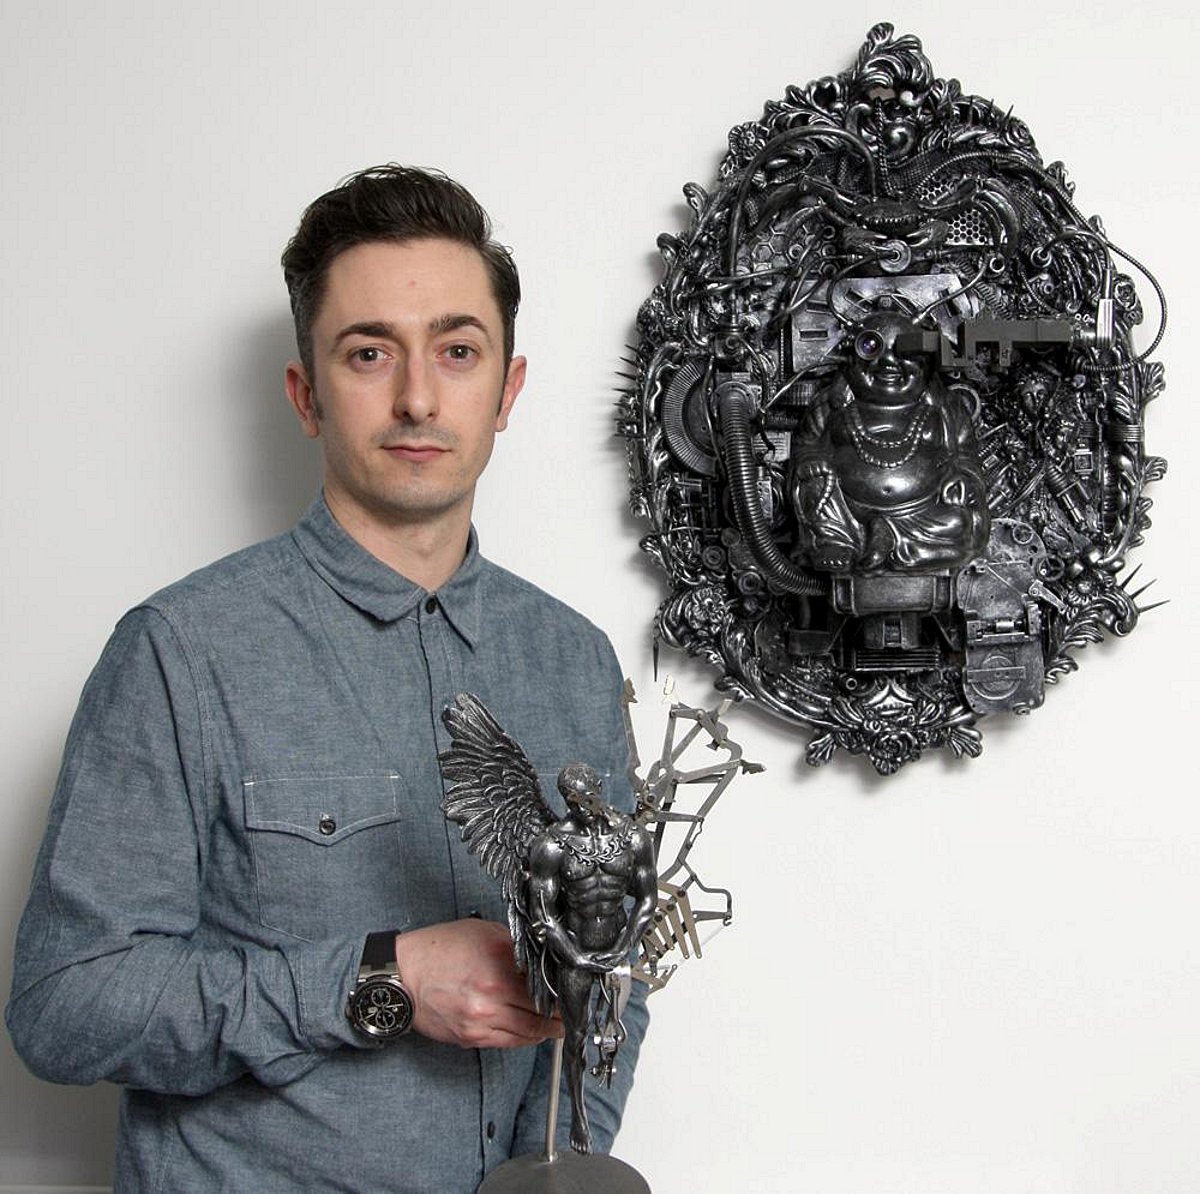 PICTURED: Dartford engineer creates sculptures out of fruit bowls and ceiling fans